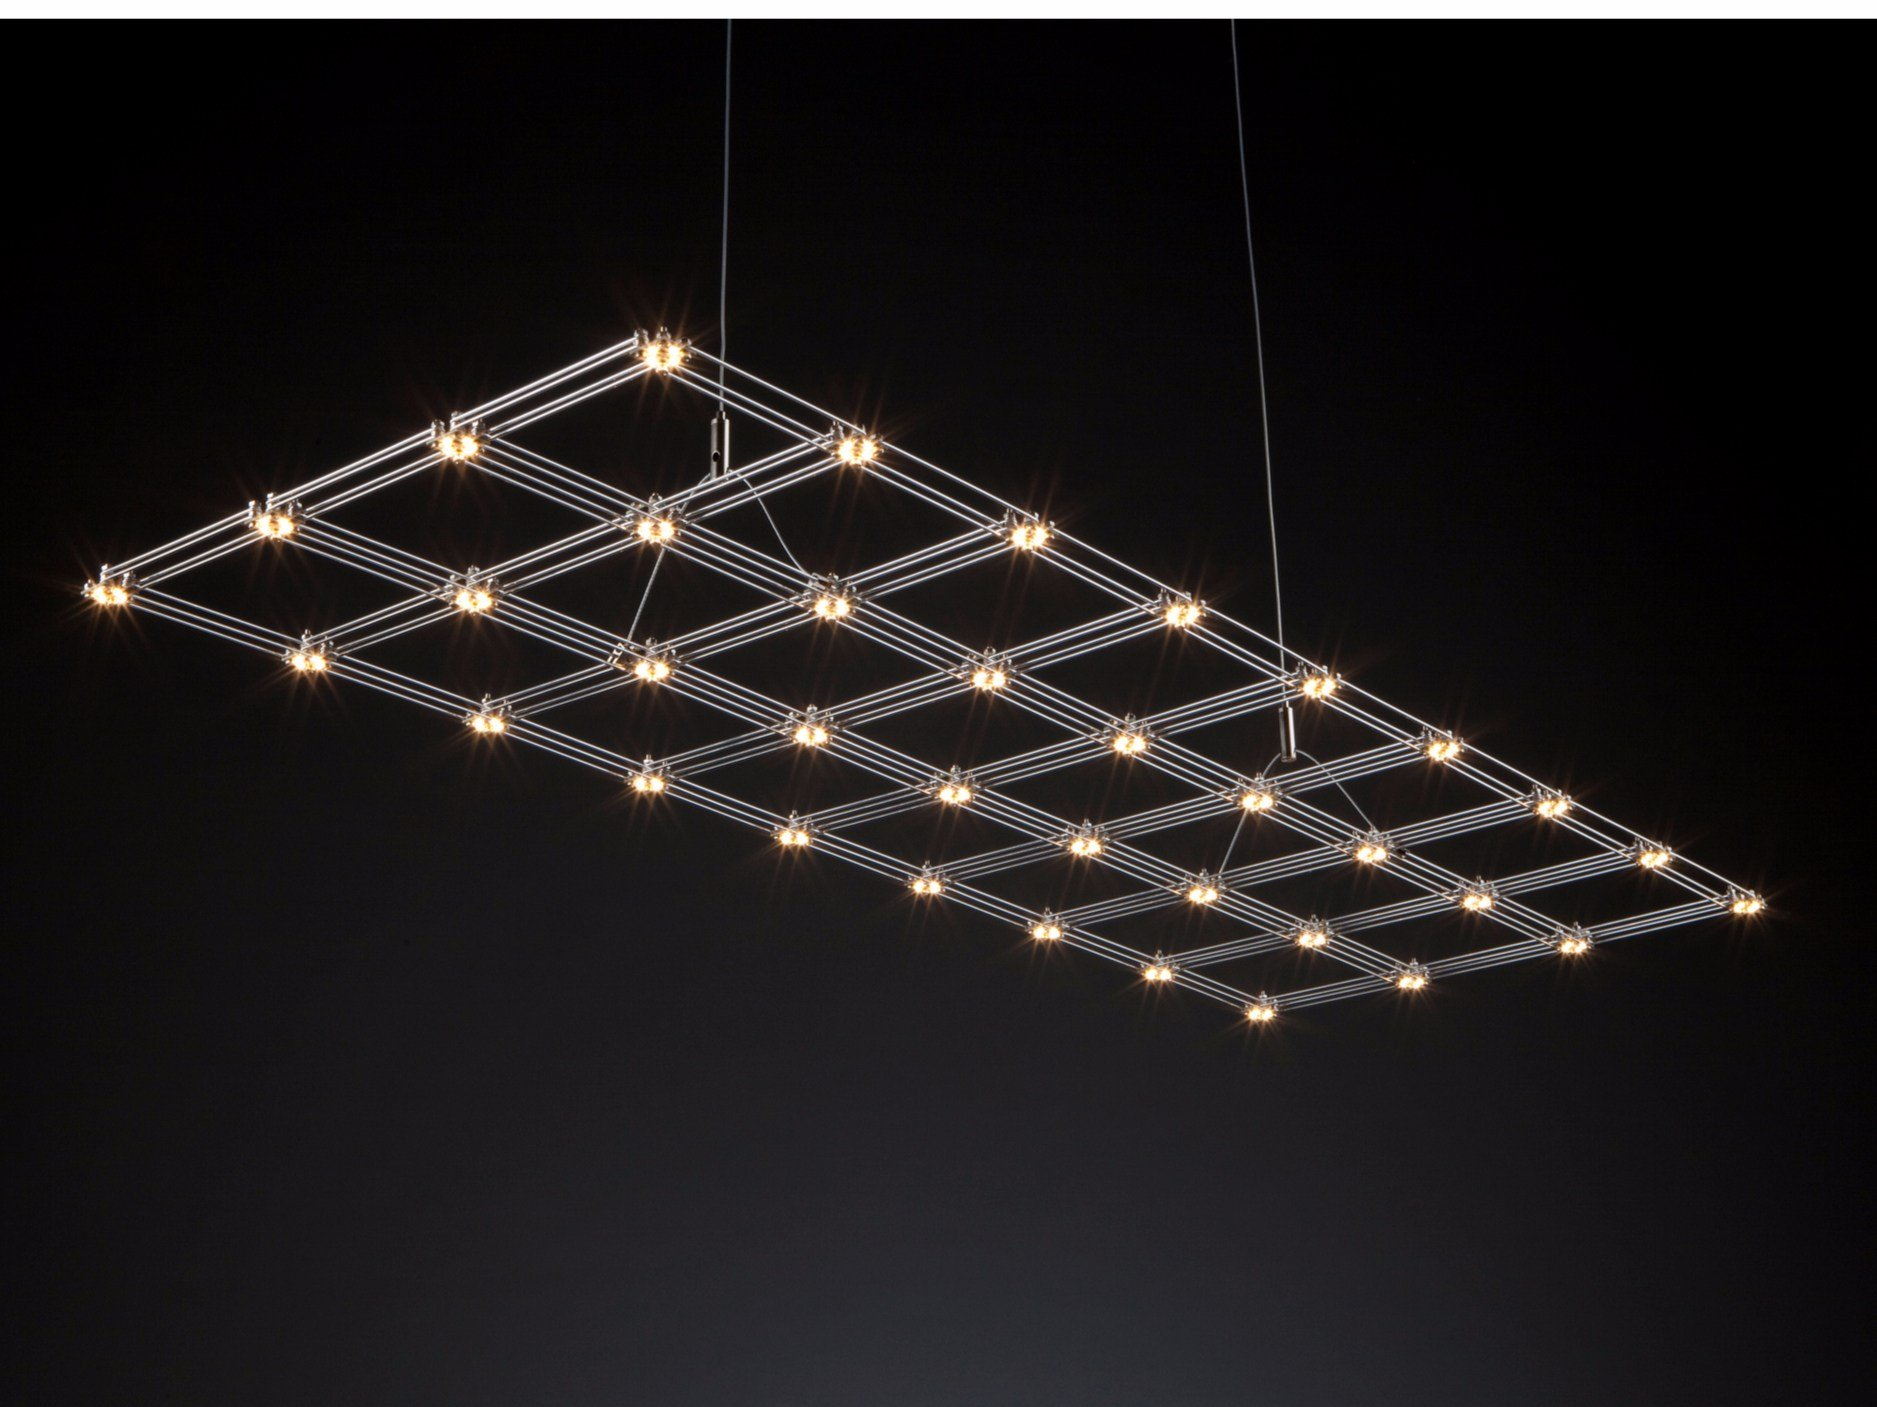 view bench rope lighting. Quasar Lighting. Lighting Unique On S Secondhalf View Bench Rope H